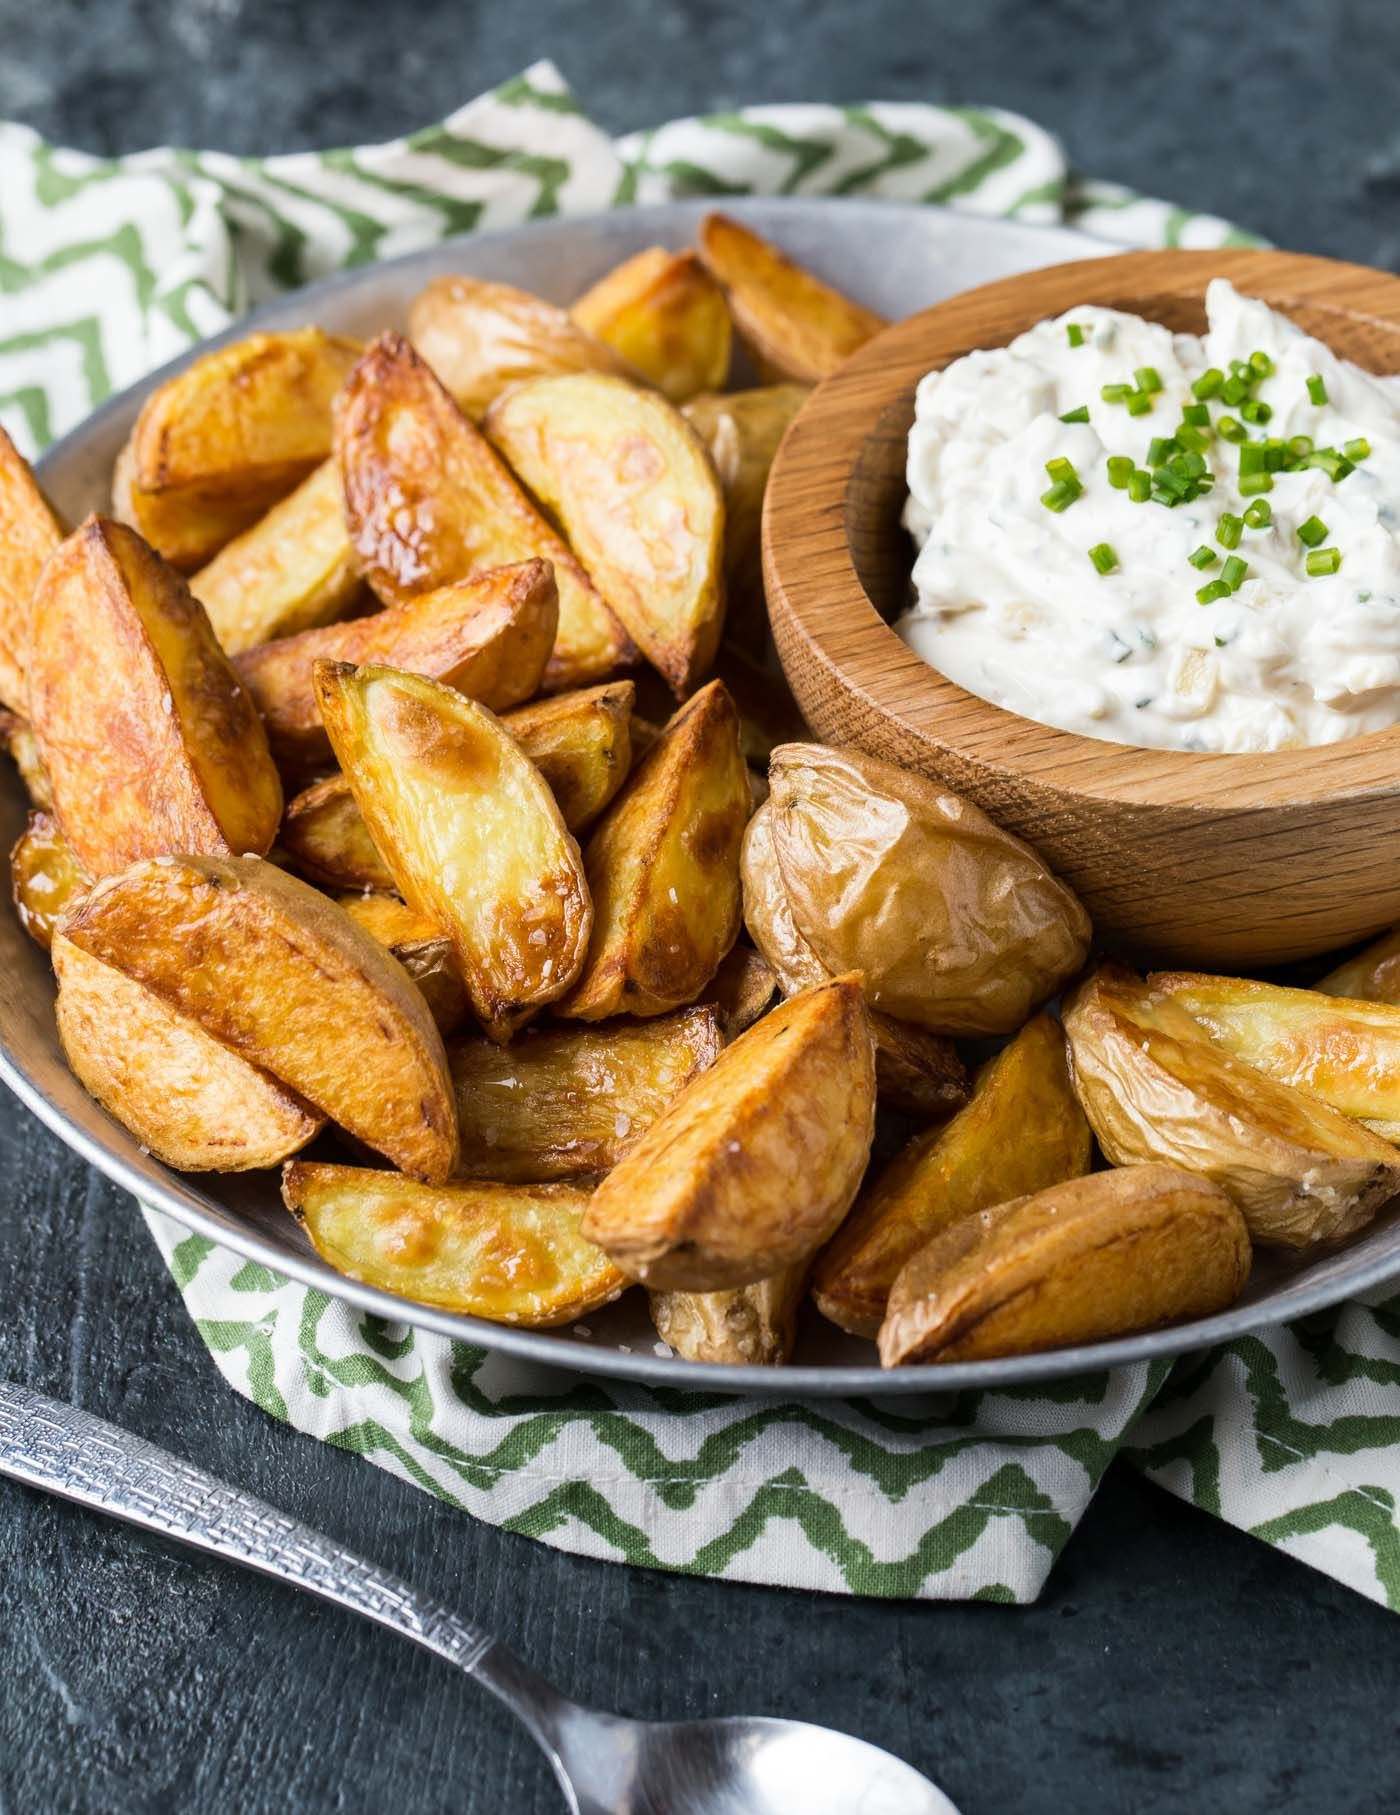 Homemade Dip Makes These Roasted Potatoes With Sour Cream And Onion Dip The Hit Of Any Appetizer Sprea Sour Cream And Onion Sour Cream Recipes Roasted Potatoes